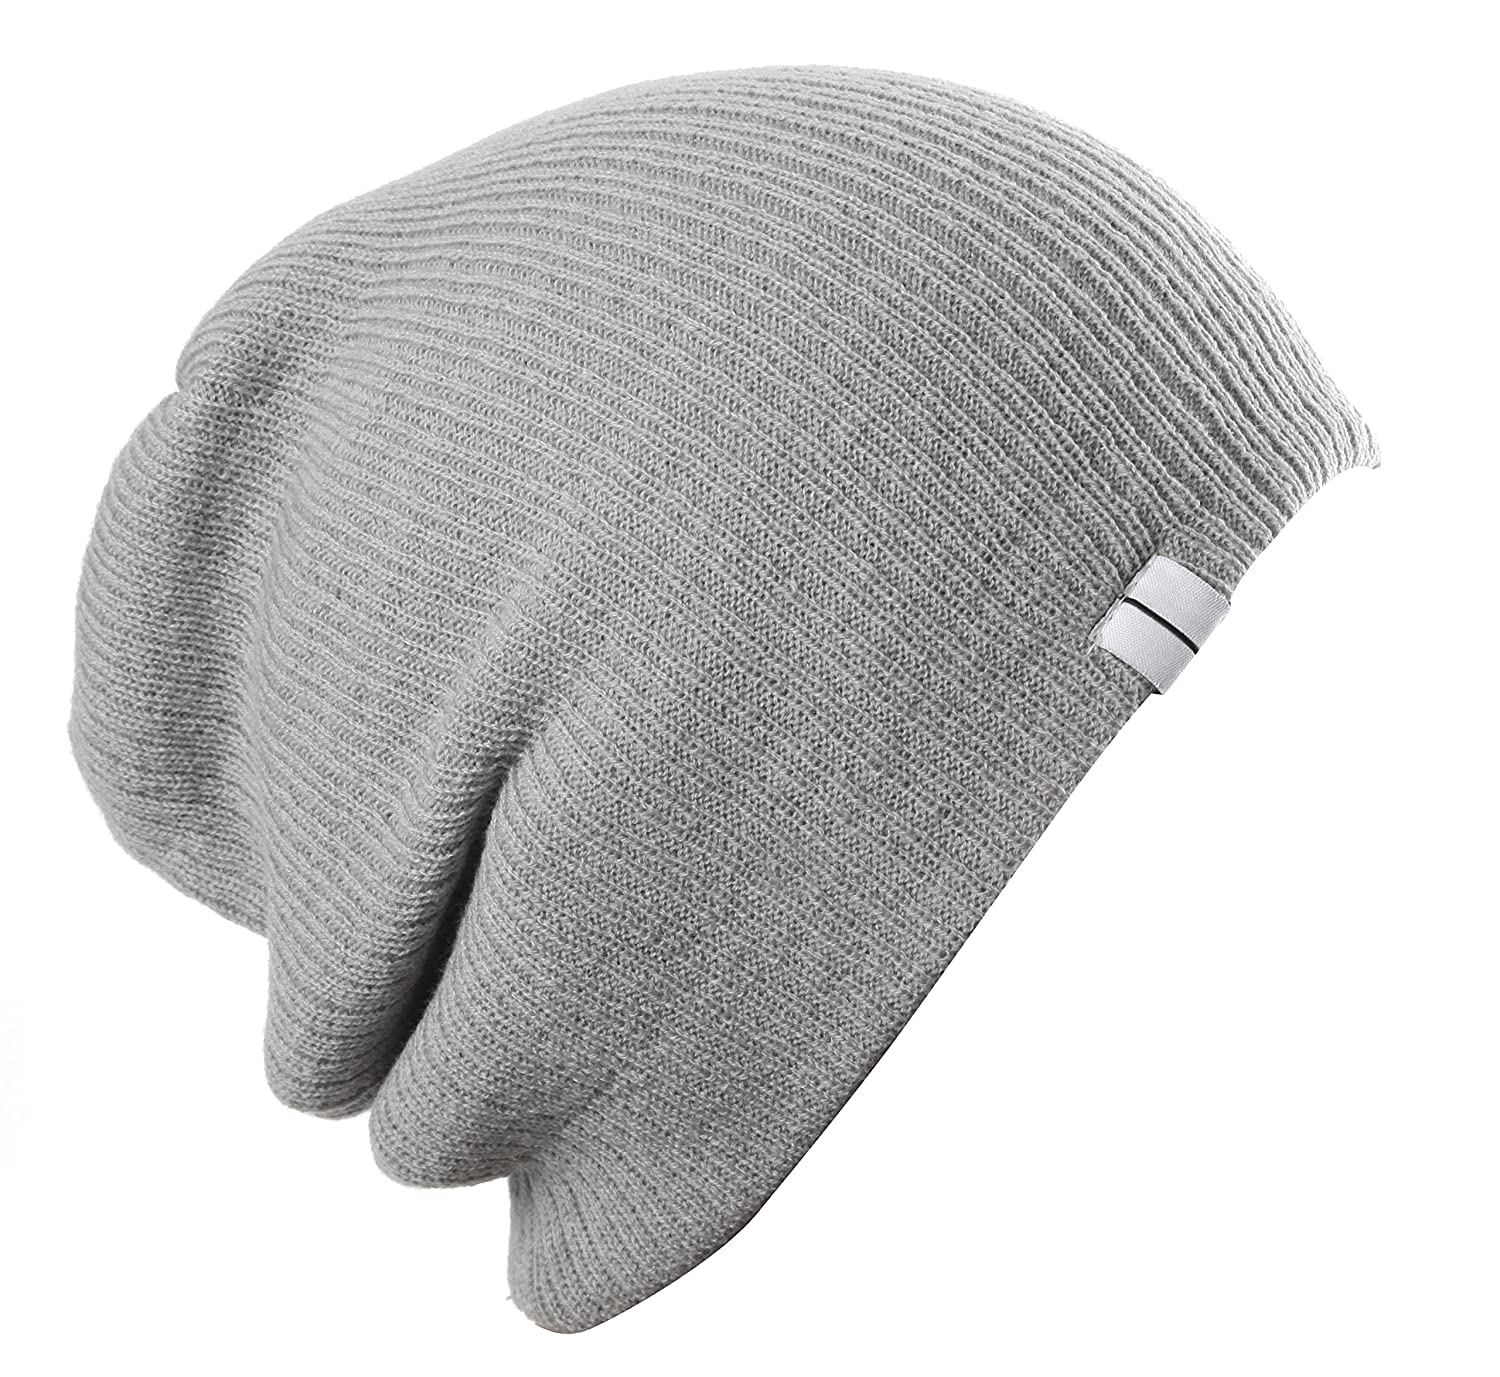 Highly Beanie Slouch Slouchy Beanie Soft Loose Beanie Hat Light Grey at  Amazon Women s Clothing store  1a2bce8994a